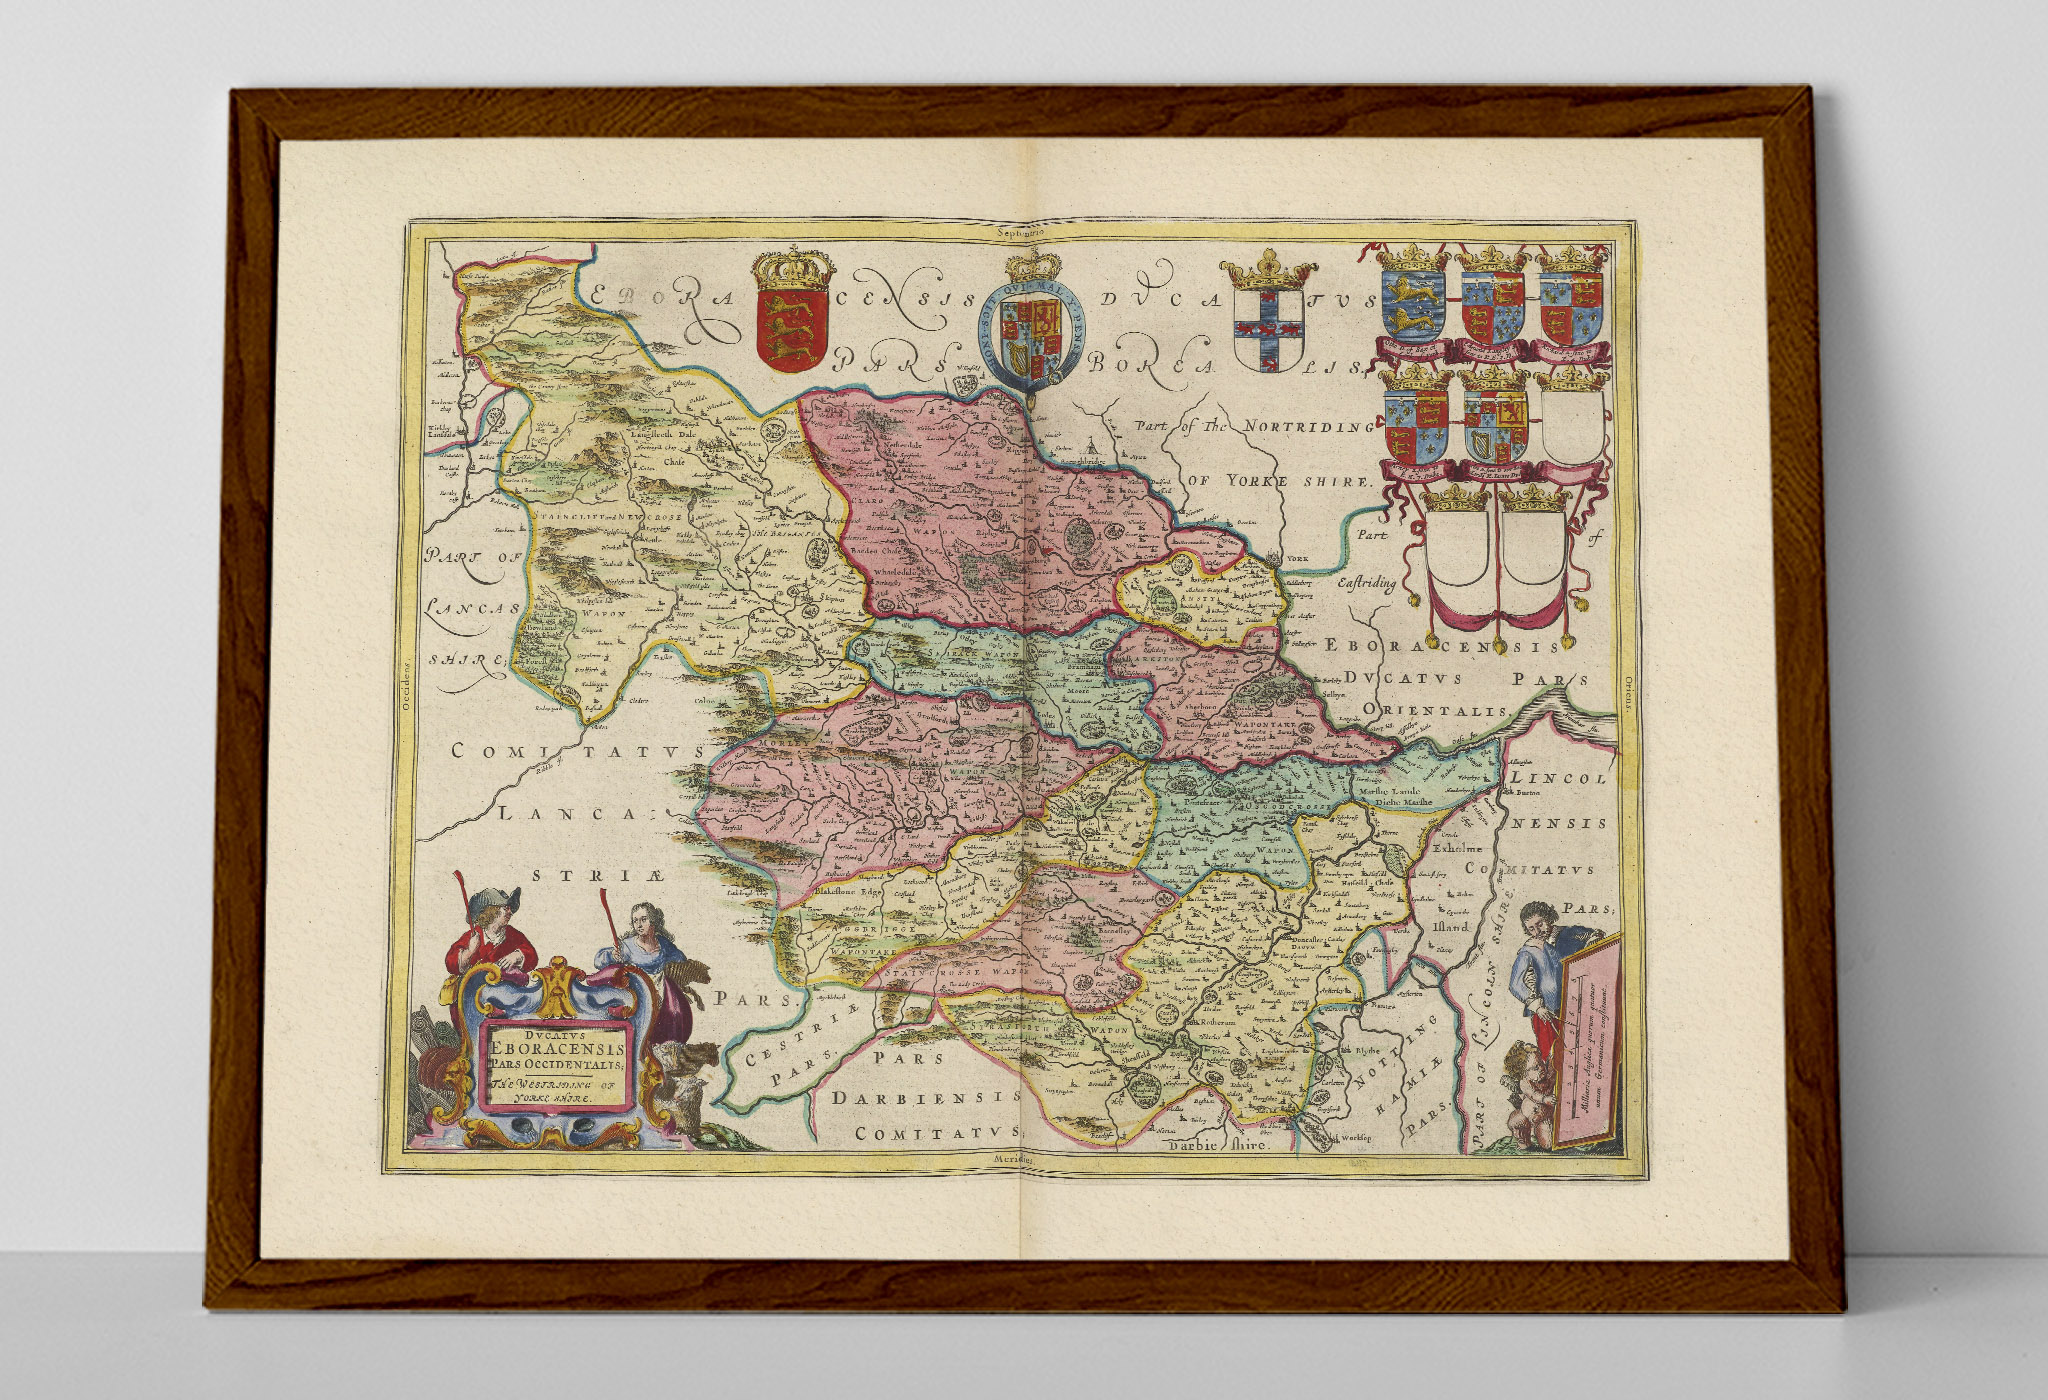 Old Map of West Yorkshire, England | Blaeu Prints – Buy ... Map Of West Yorkshire Uk on map of brigham yorkshire england, map of pudsey yorkshire england, map north yorkshire uk, map of west yorkshire yorkshire and british, map west yorkshire england, map of north west uk, map west riding yorkshire uk, map of south west uk, cities in yorkshire uk, map of india's special sites, map of west ireland, map of west scotland, map of yorkshire dales uk, map of dewsbury yorkshire england, map of west midlands uk, map of west wales,